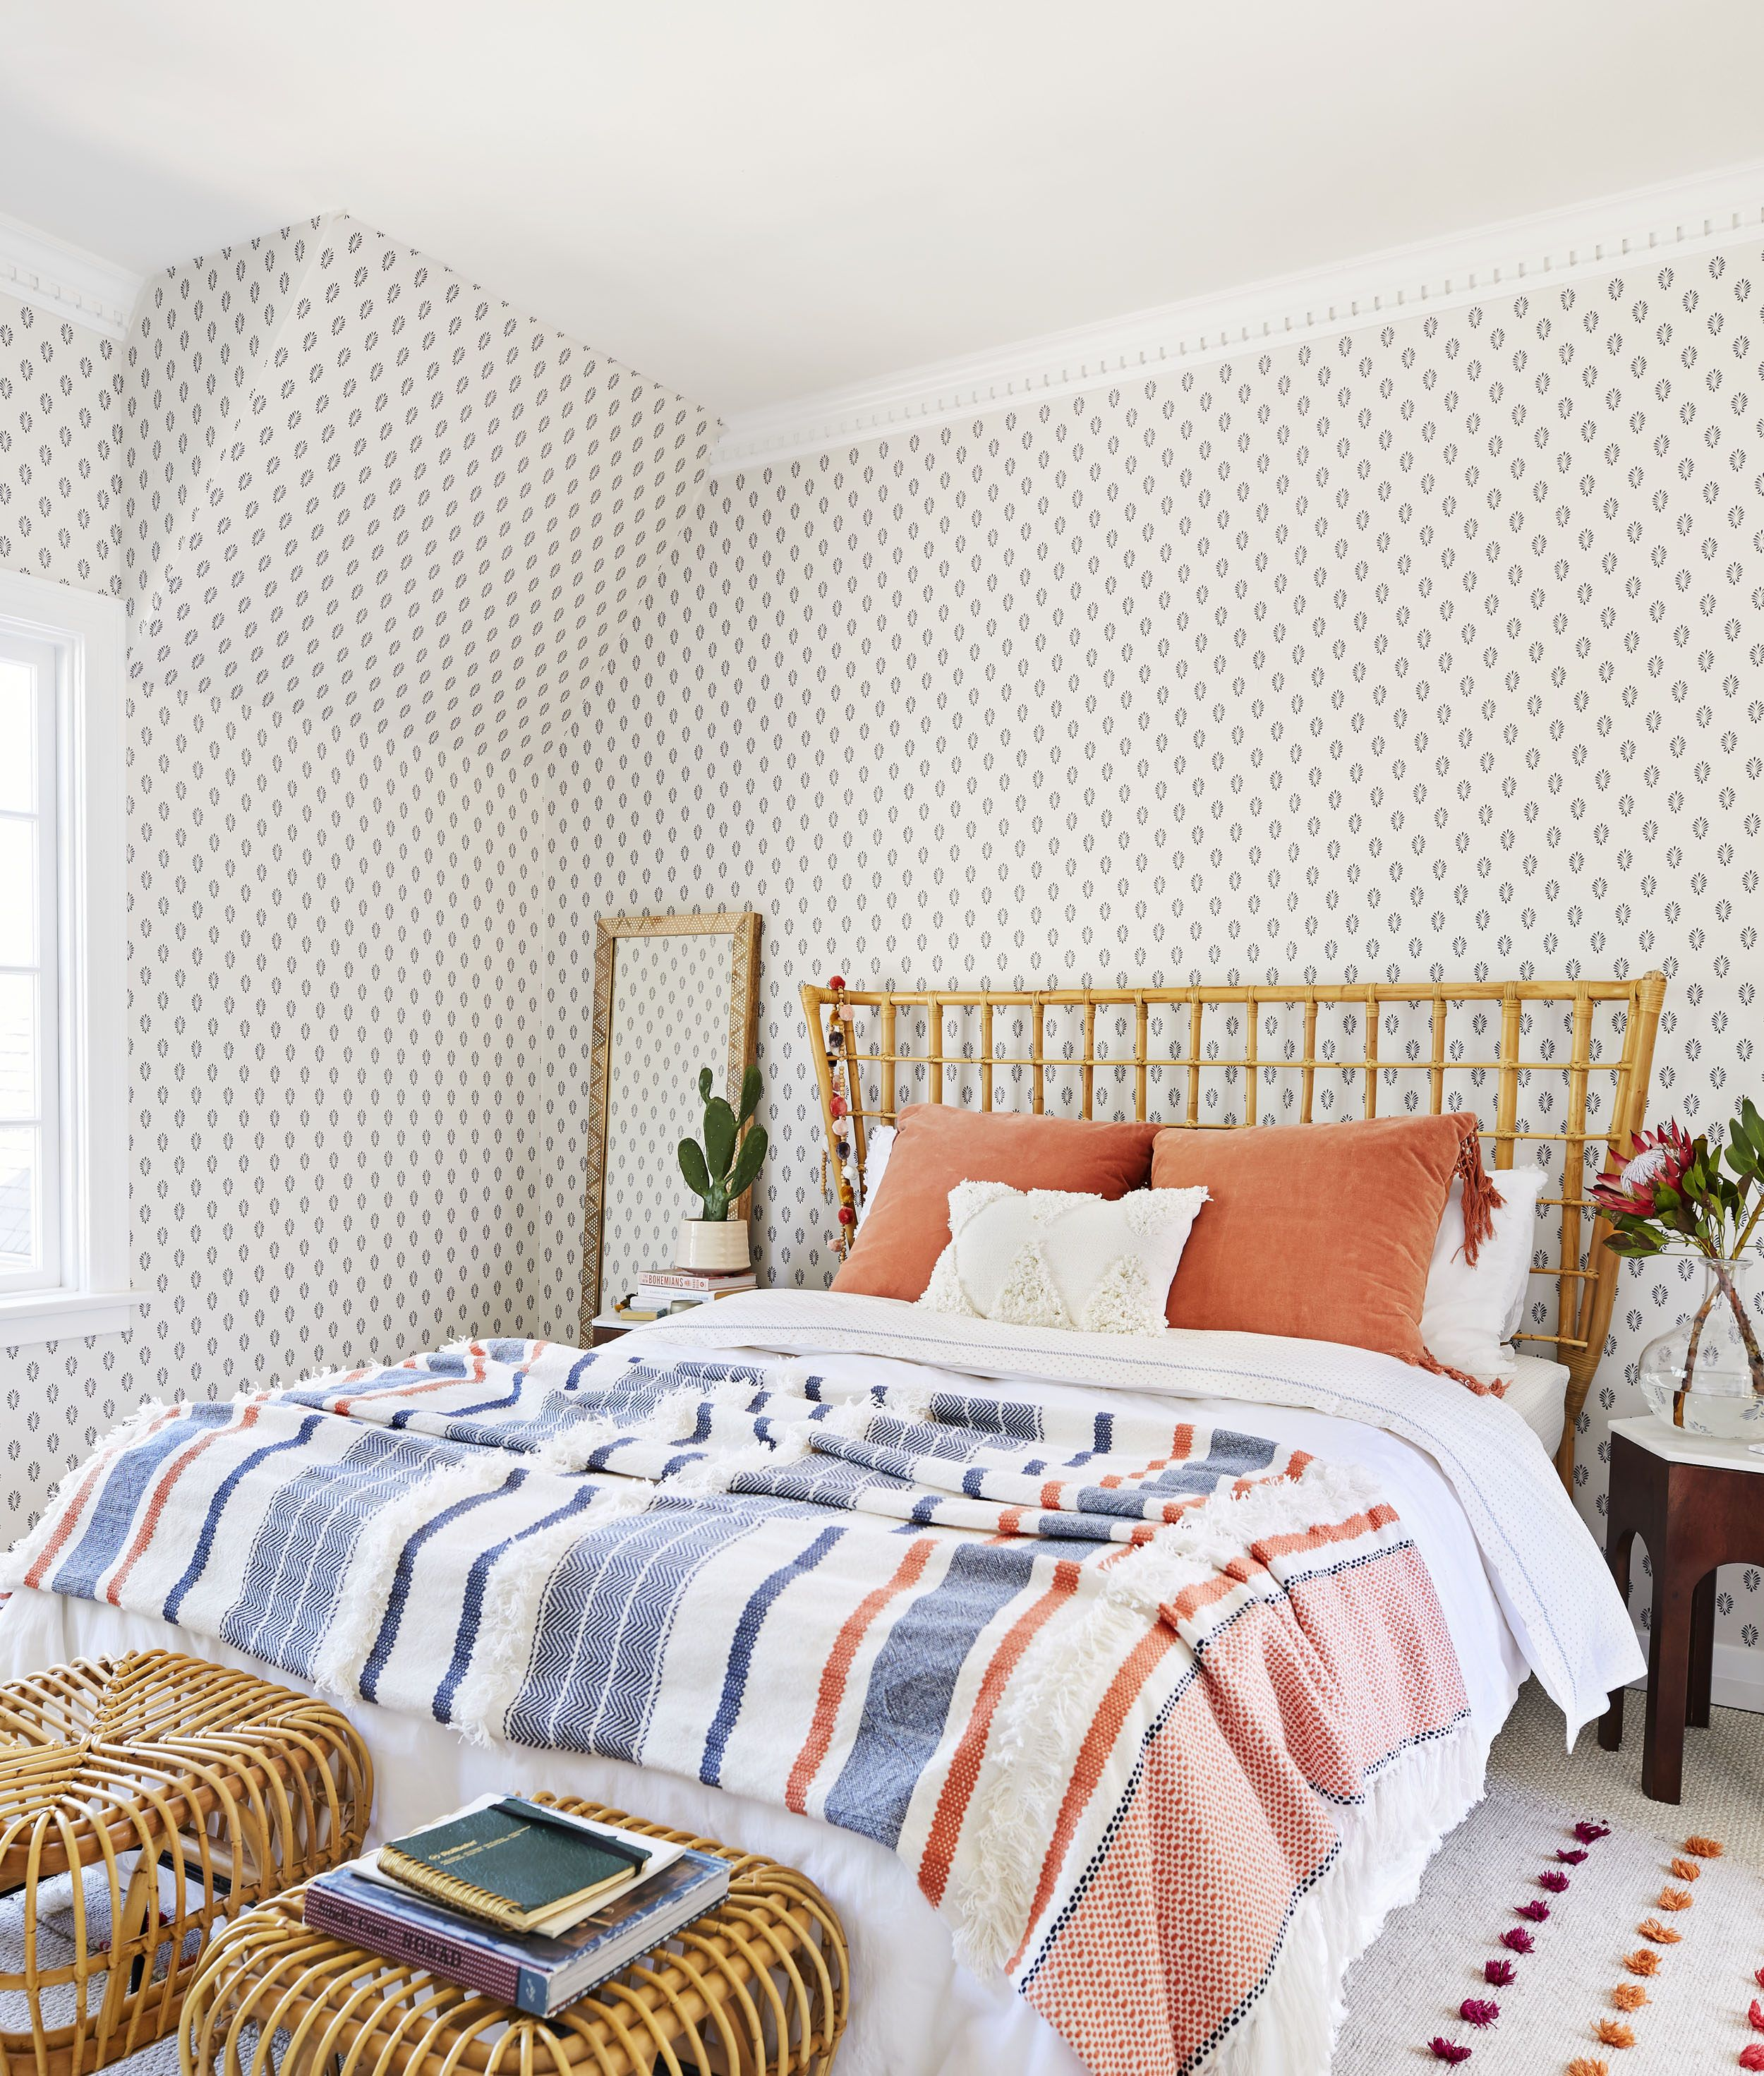 A Boho '70s-Inspired Bedroom With Opalhouse By Target